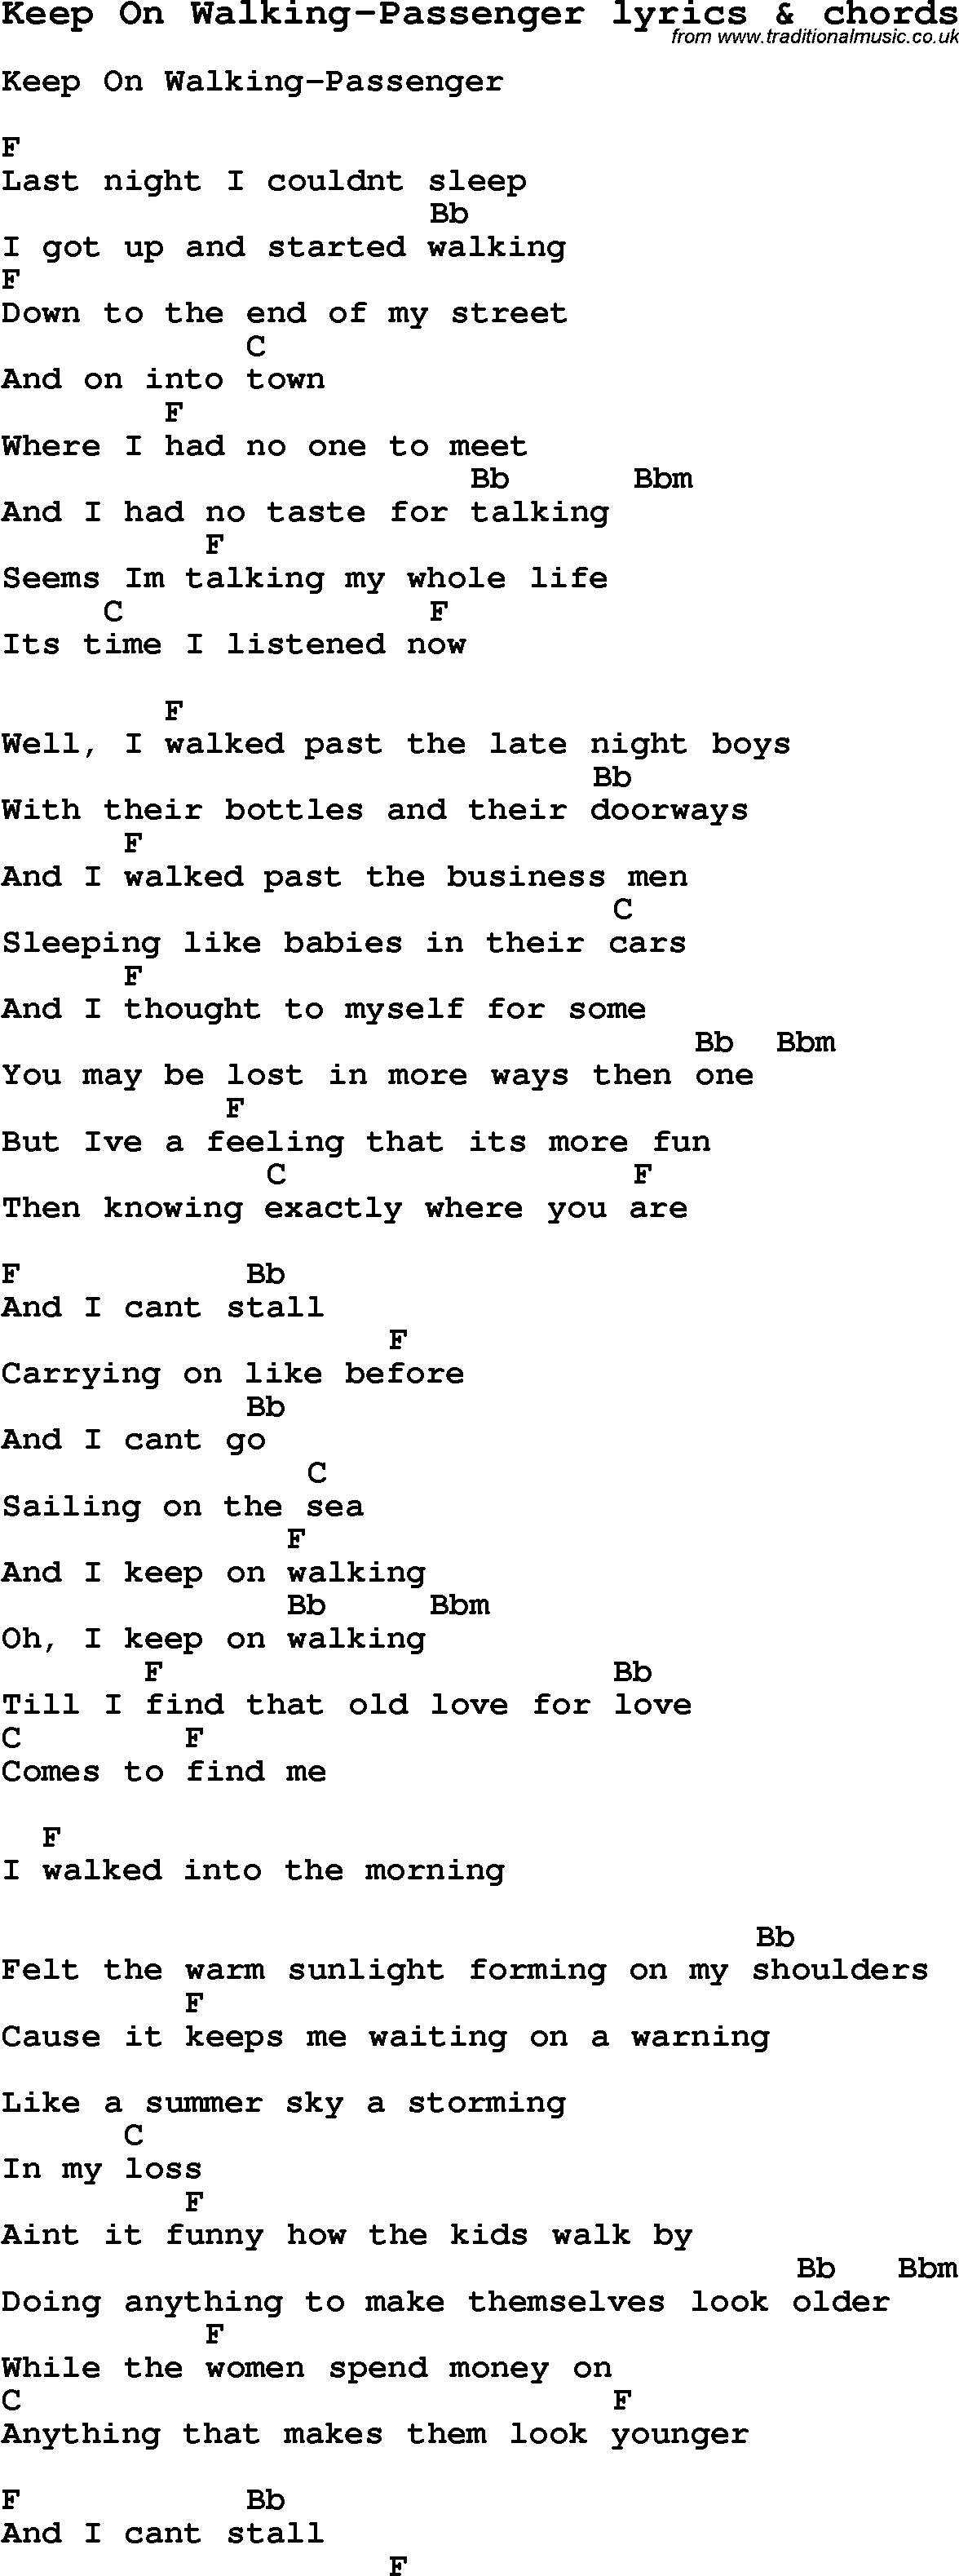 Love Song Lyrics Forkeep On Walking Passenger With Chords